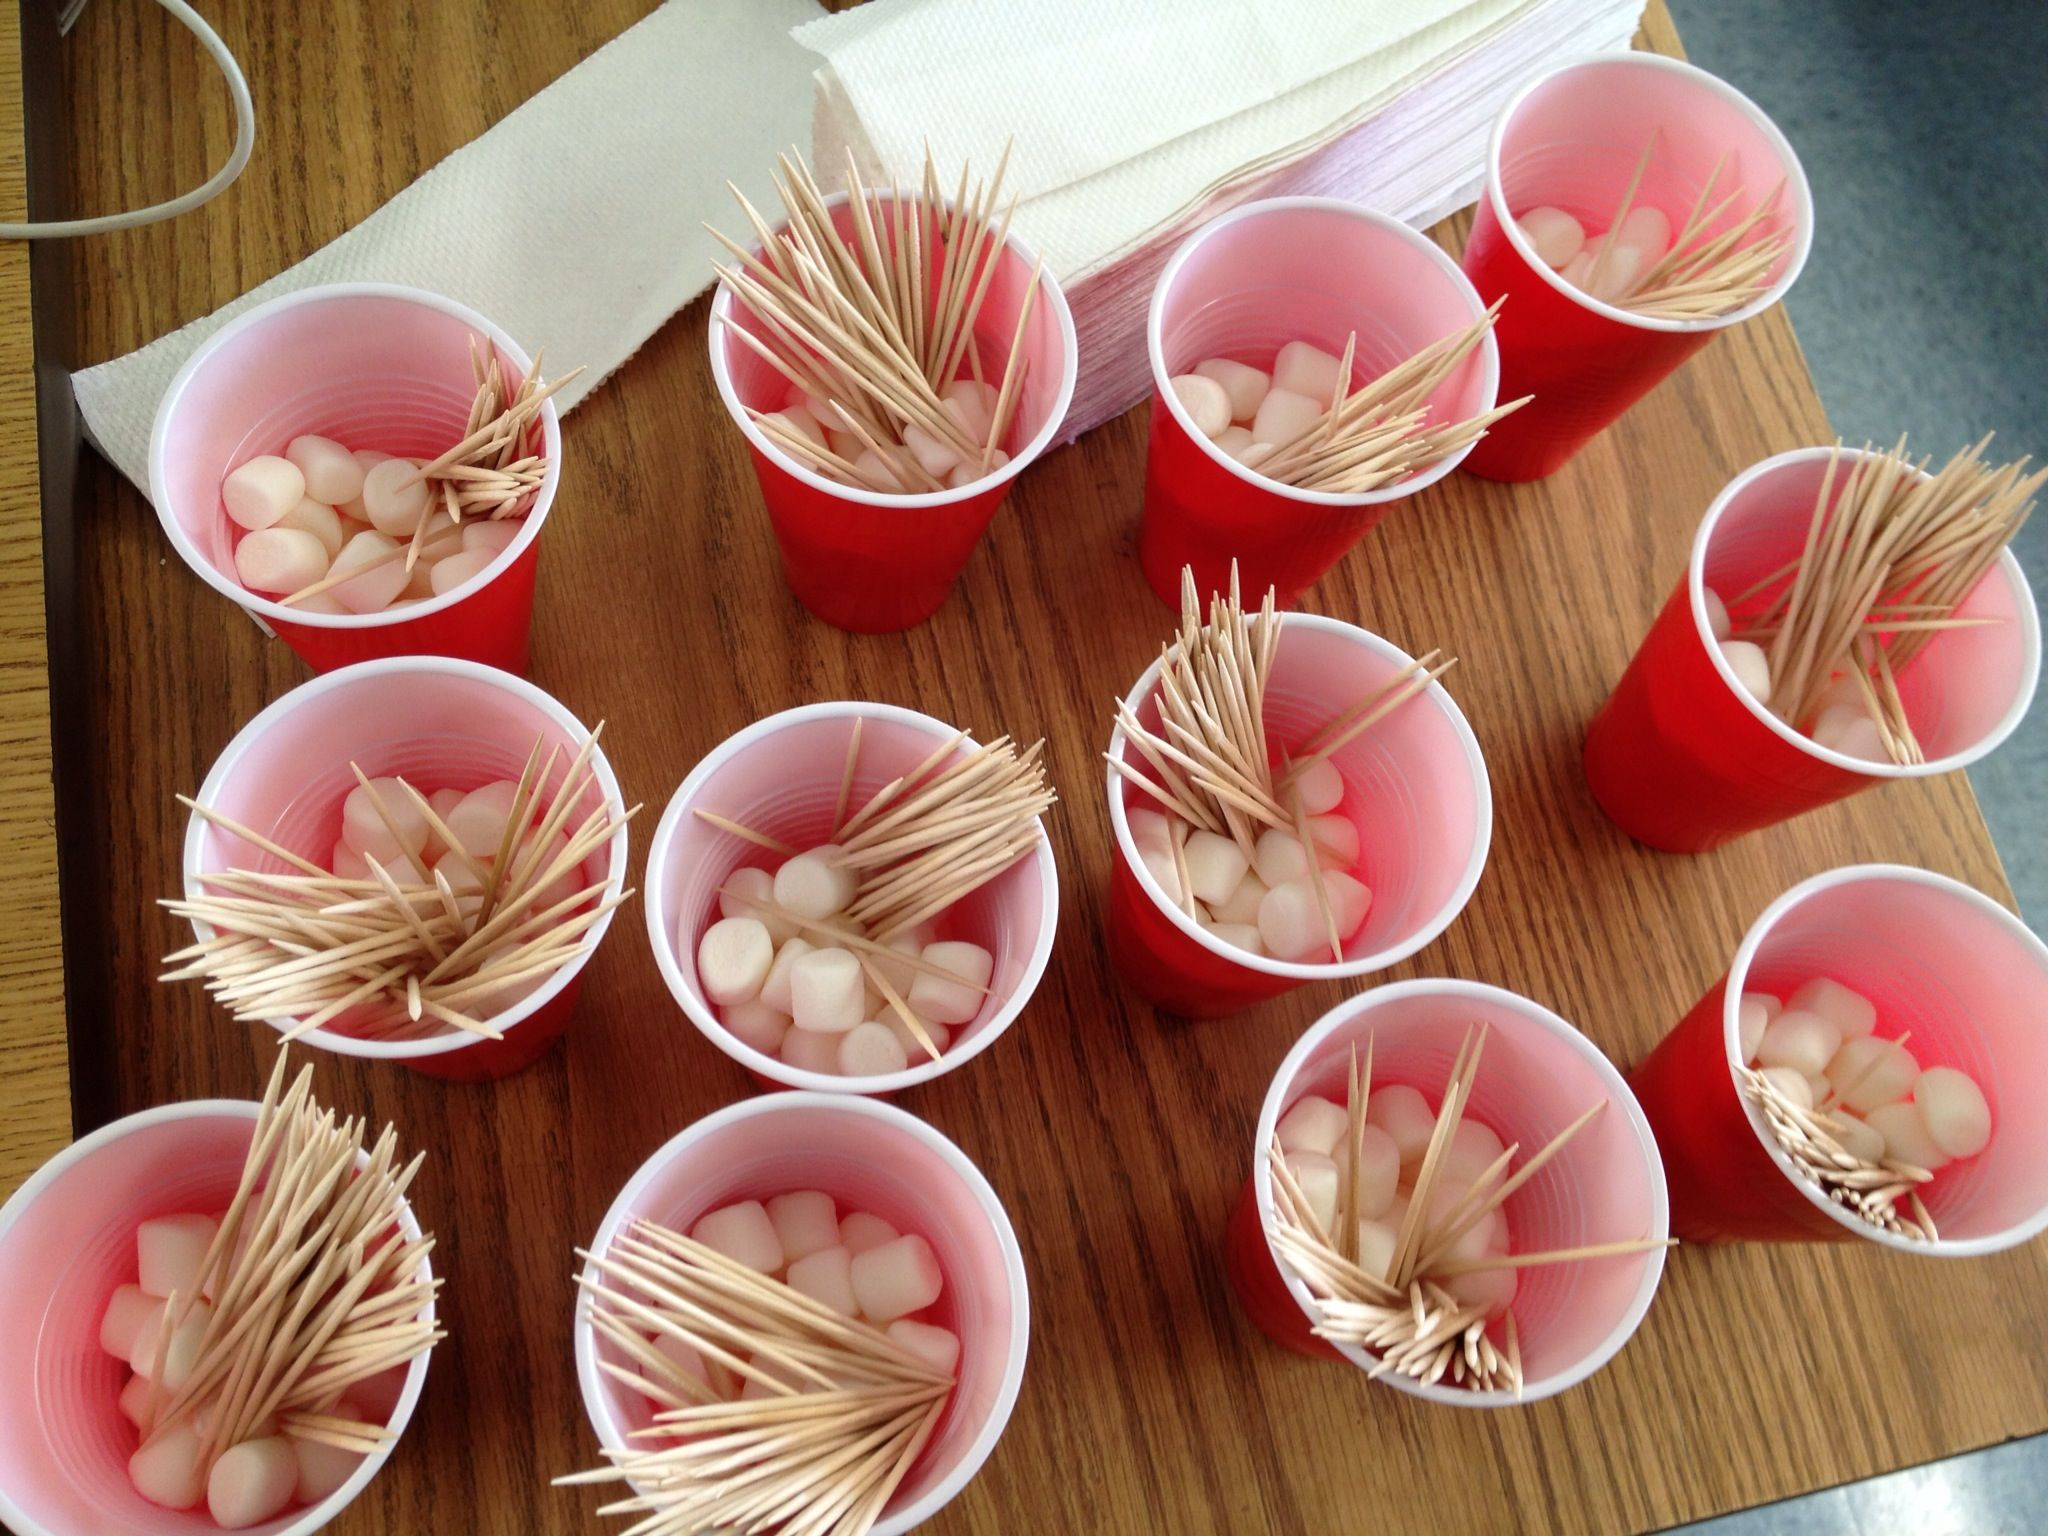 Stem Activity Marshmallows And Toothpicks Construct Solid Shapes And Engineer Sculptures